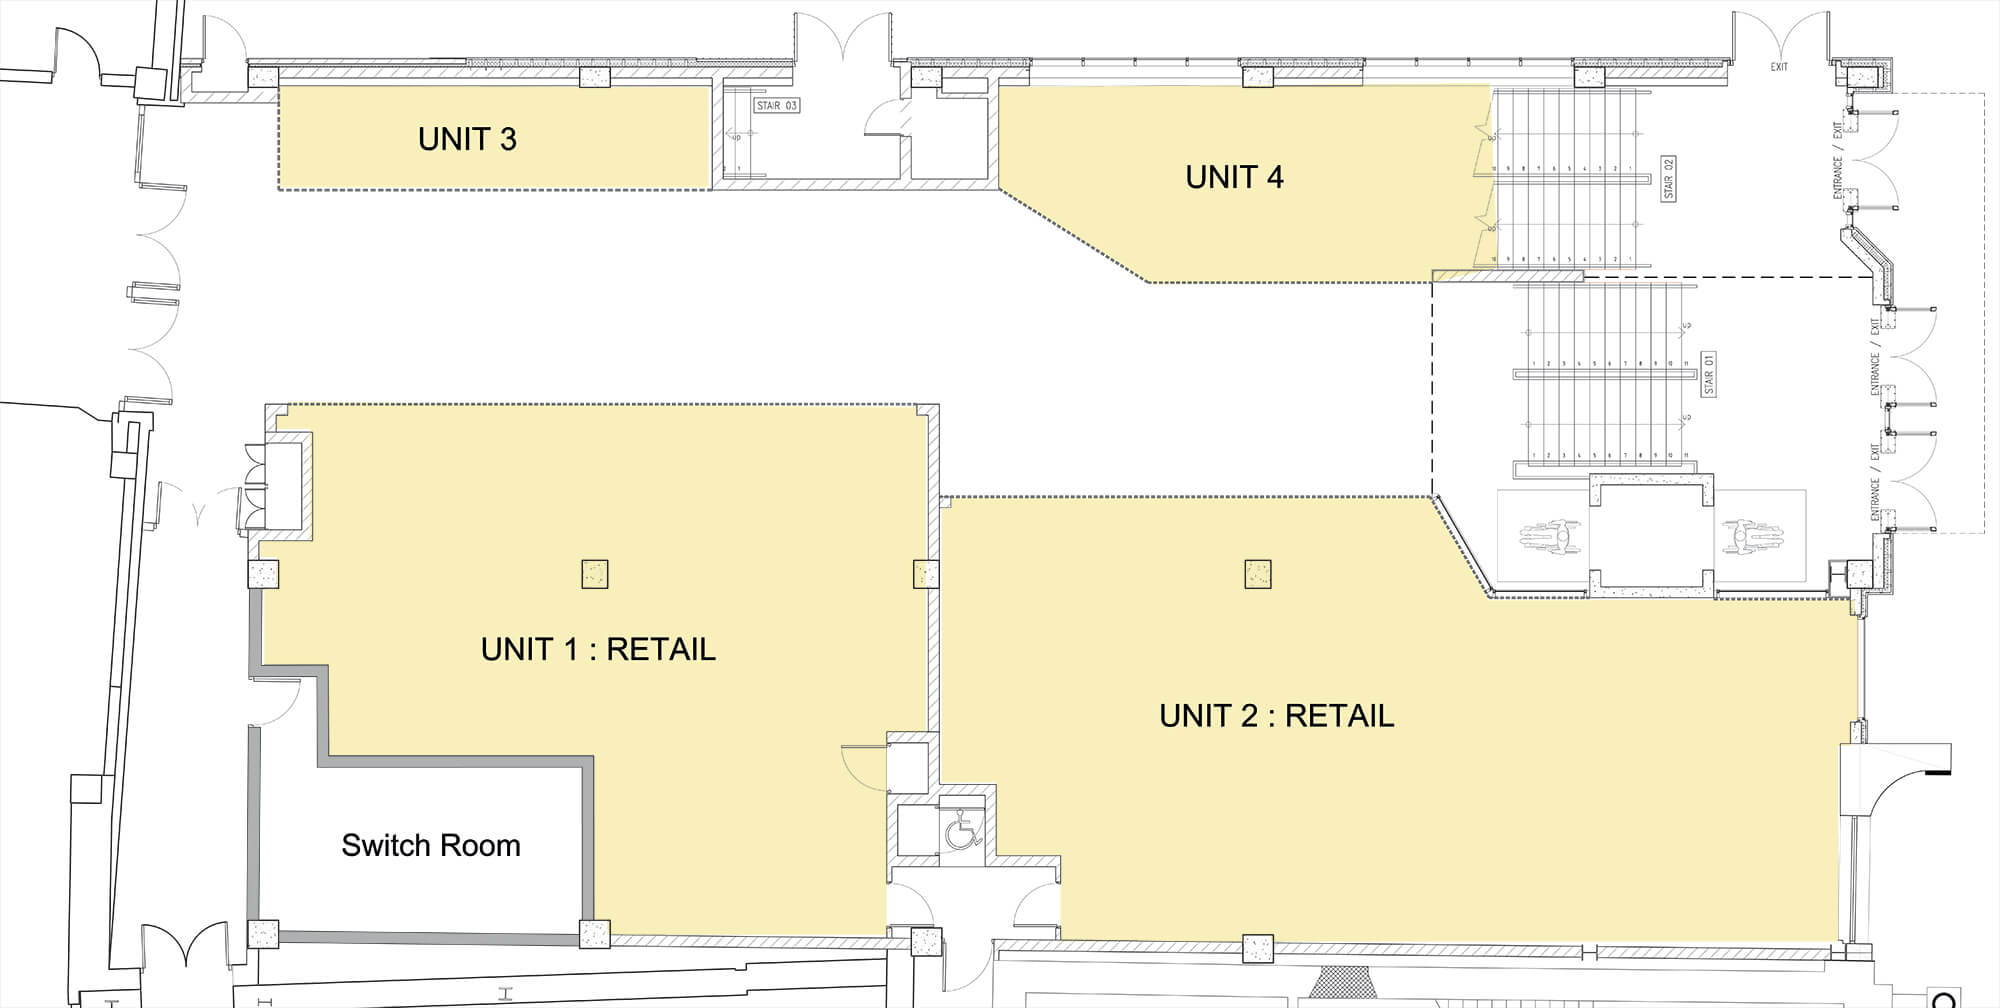 Photo convenience store floor plan images convenience for Retail store layout software